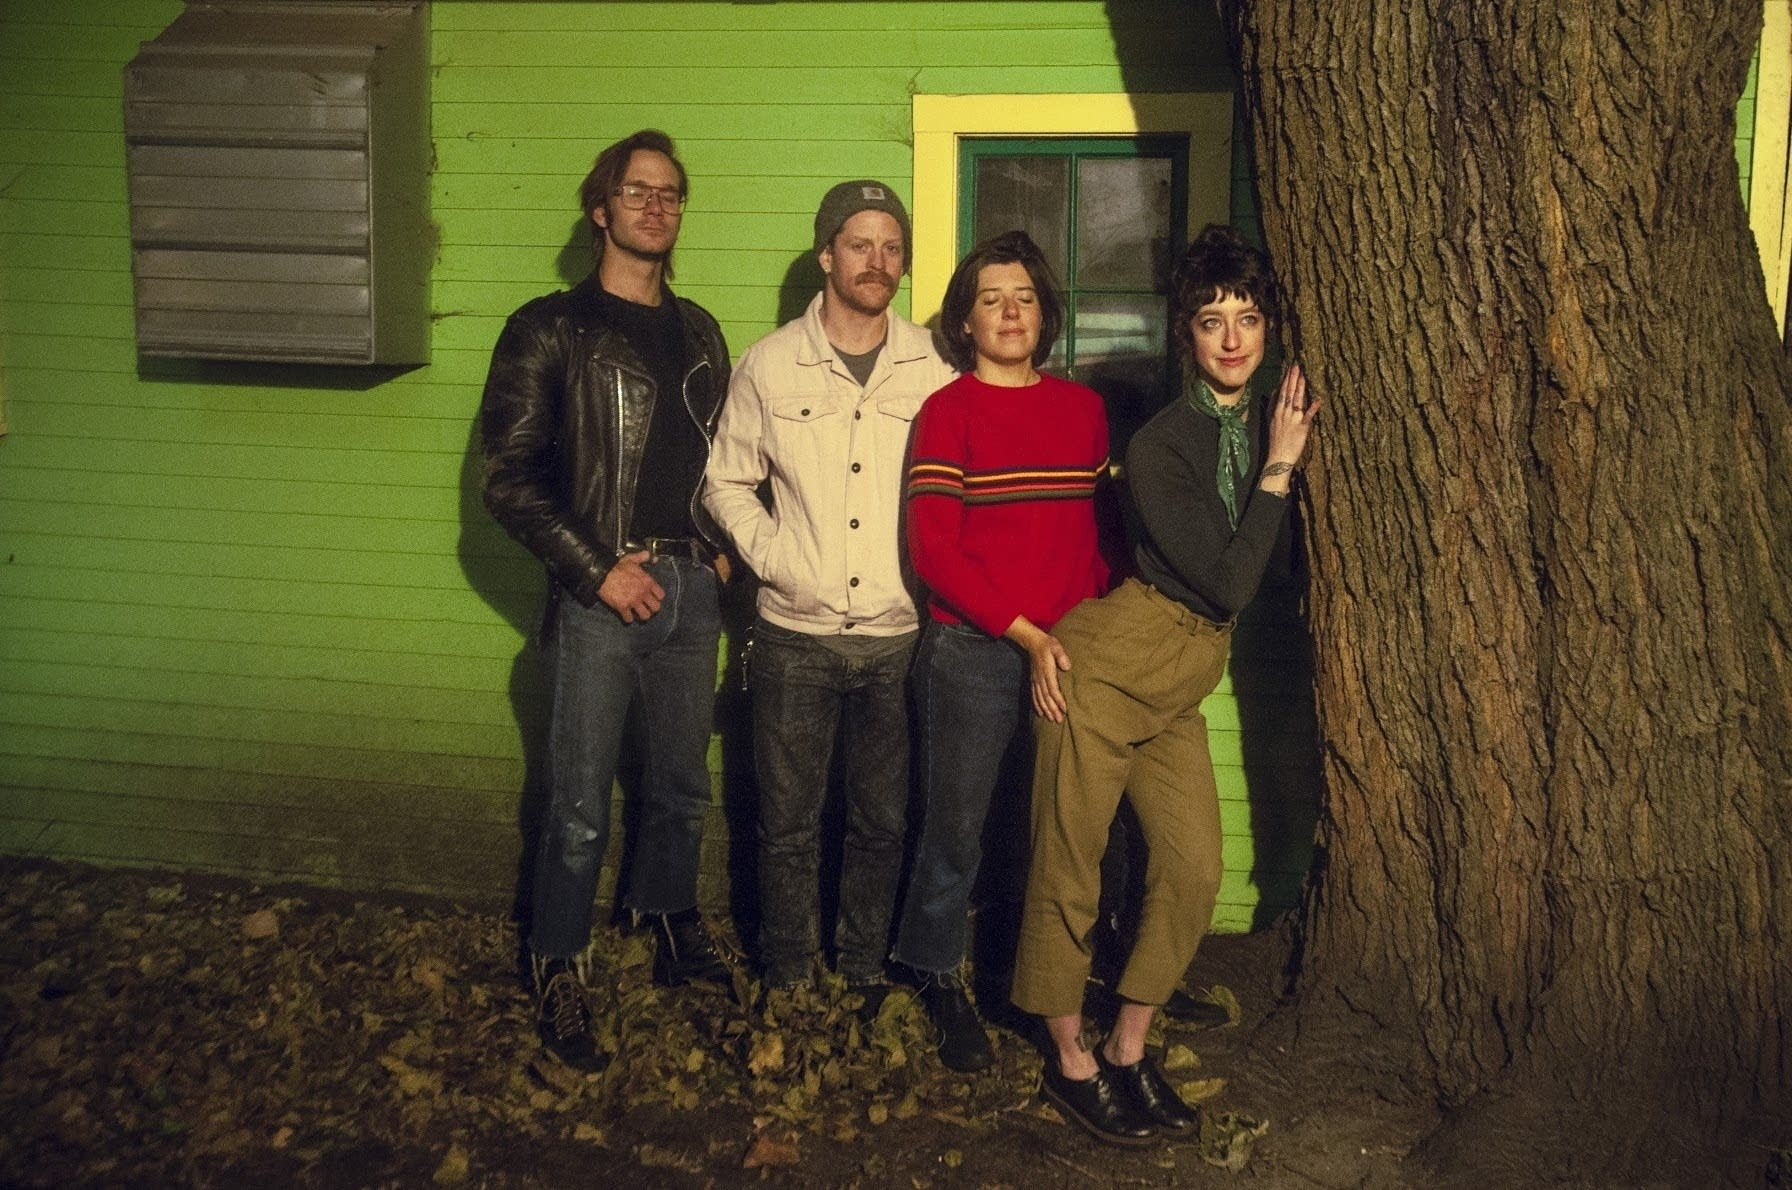 Four people standing near a tree at night.